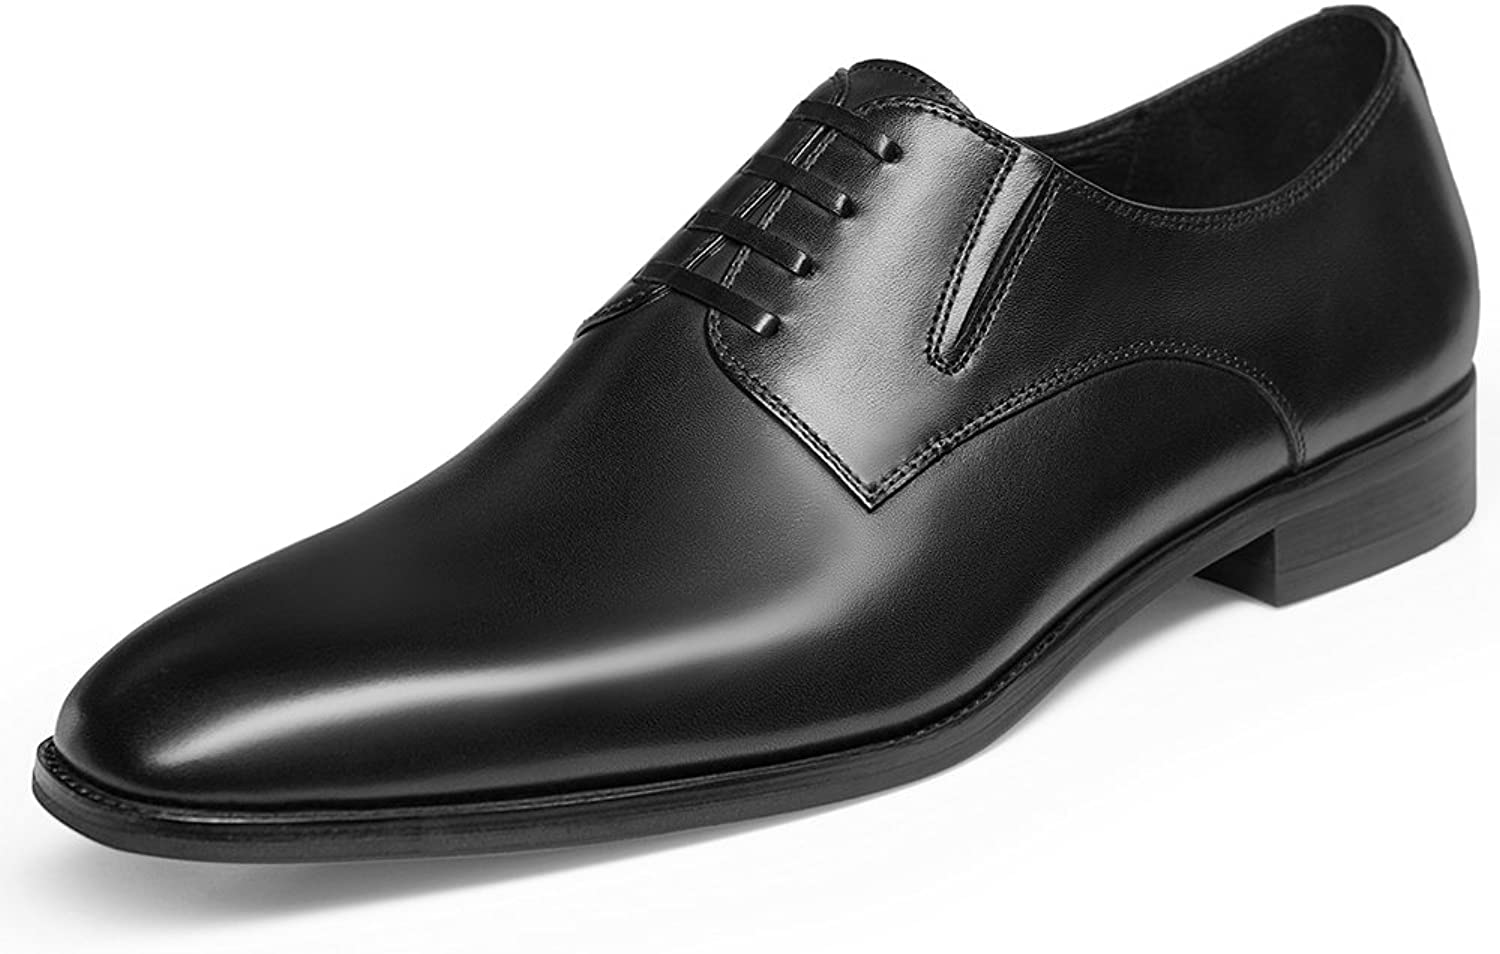 b296376ae1b4 GIFENNSE Men's Leather Oxford shoes Mens Dress shoes shoes shoes ...